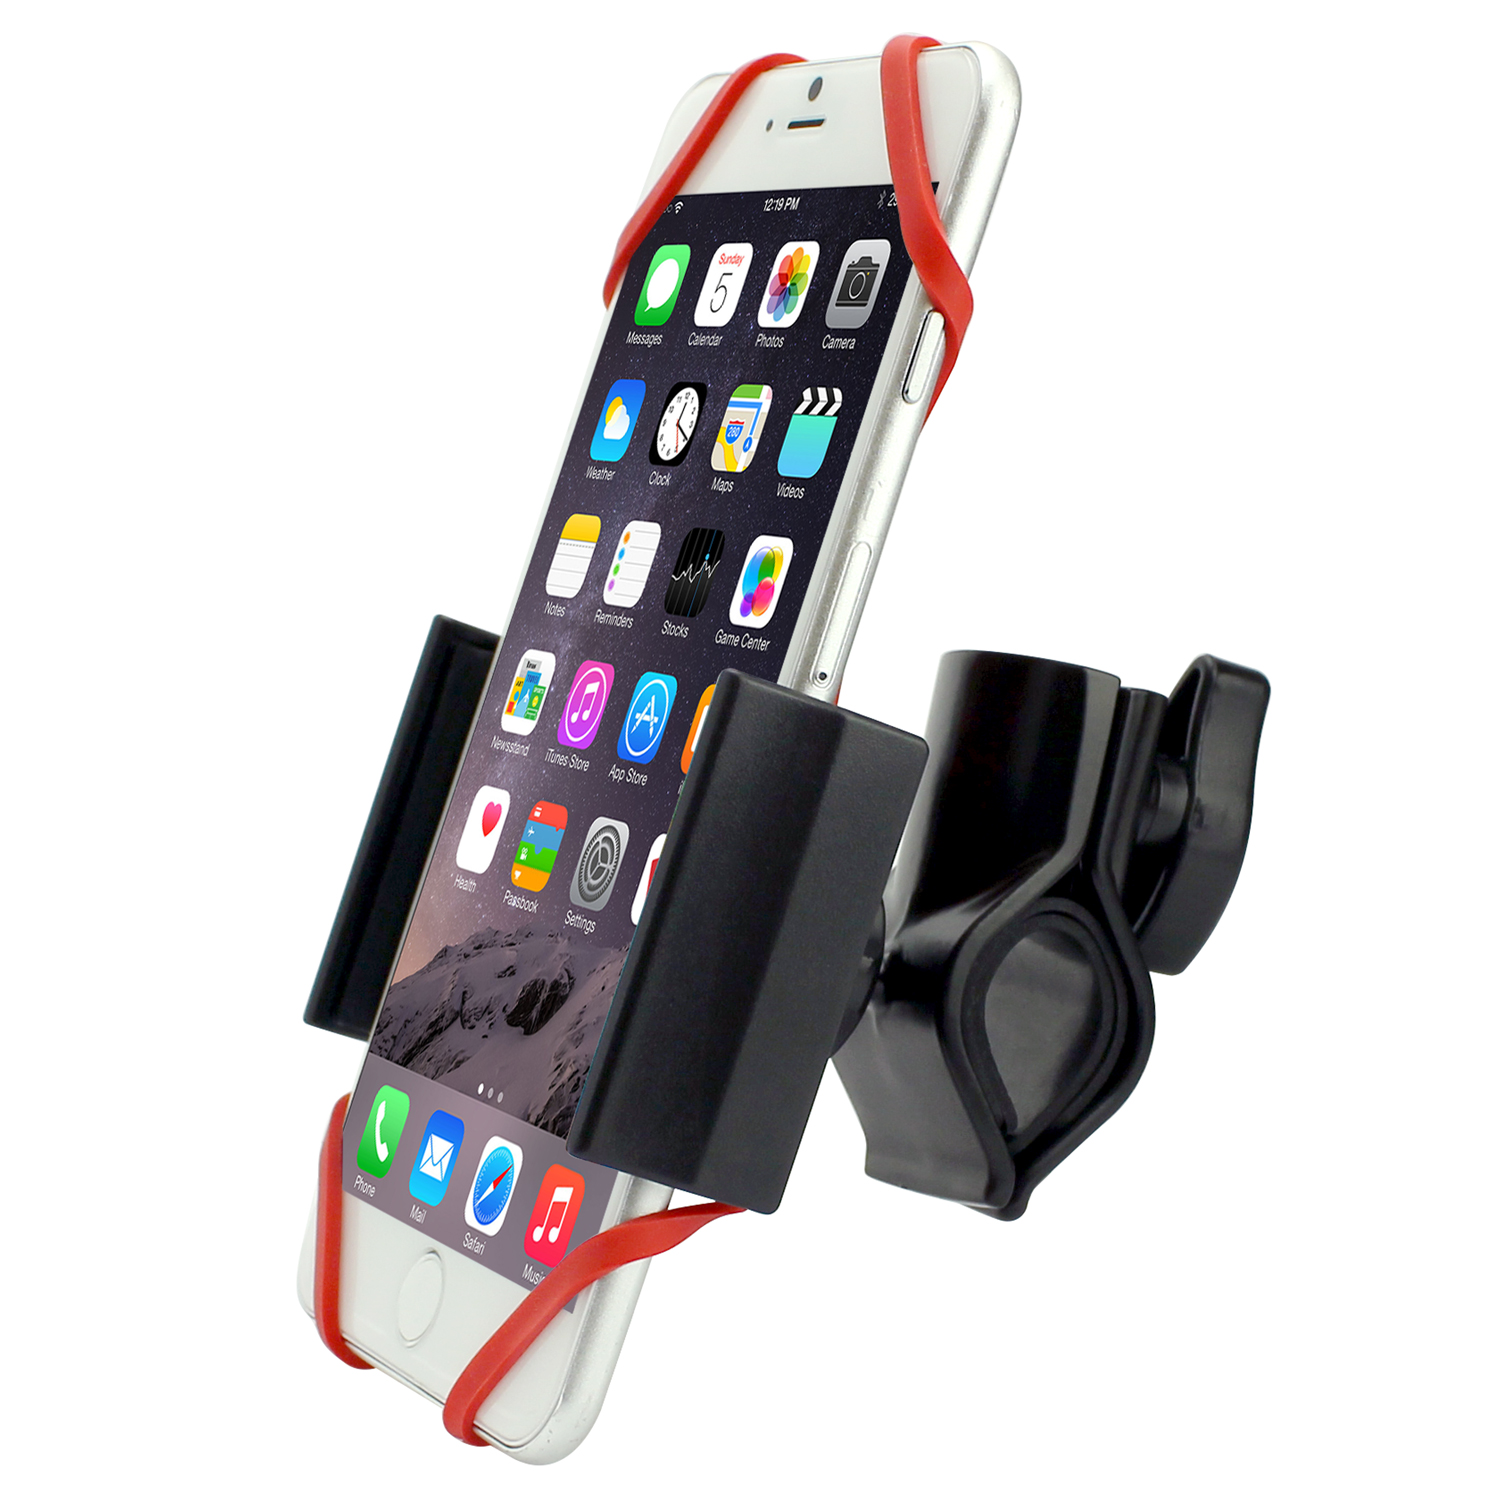 LG Volt 2 Bike Phone Mount Adjustable Black